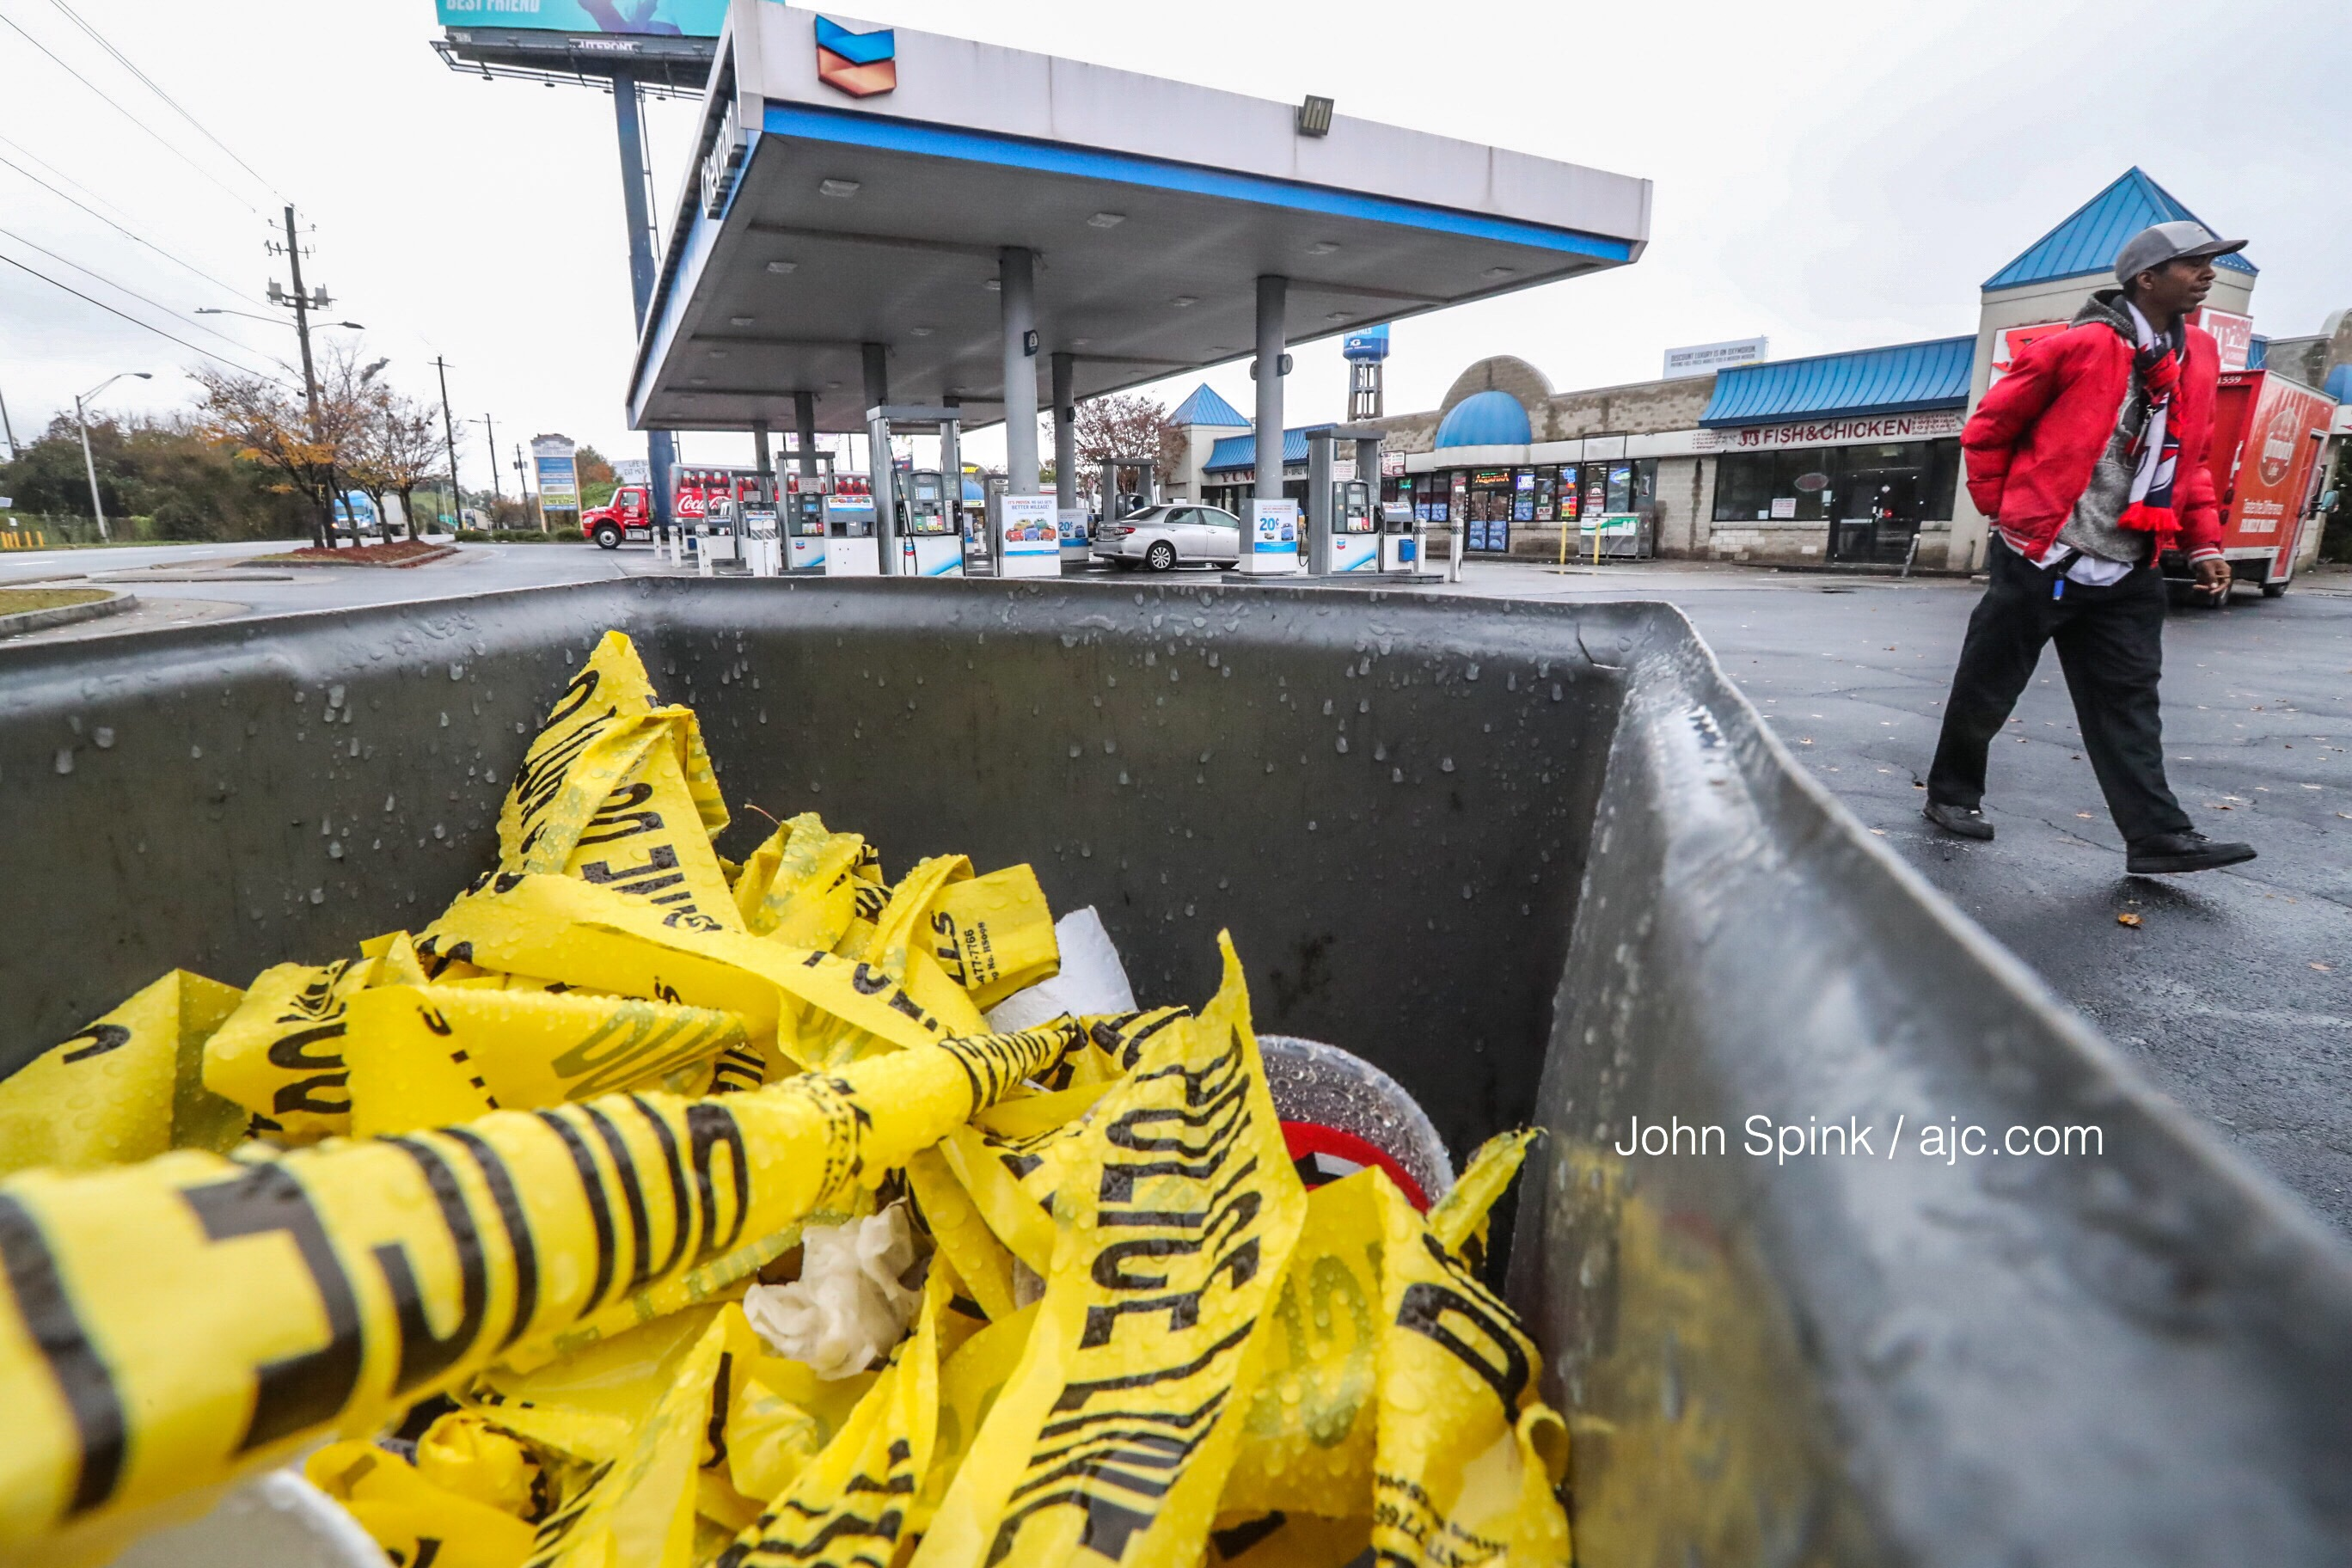 2 killed, 1 injured in shooting at southwest Atlanta gas station